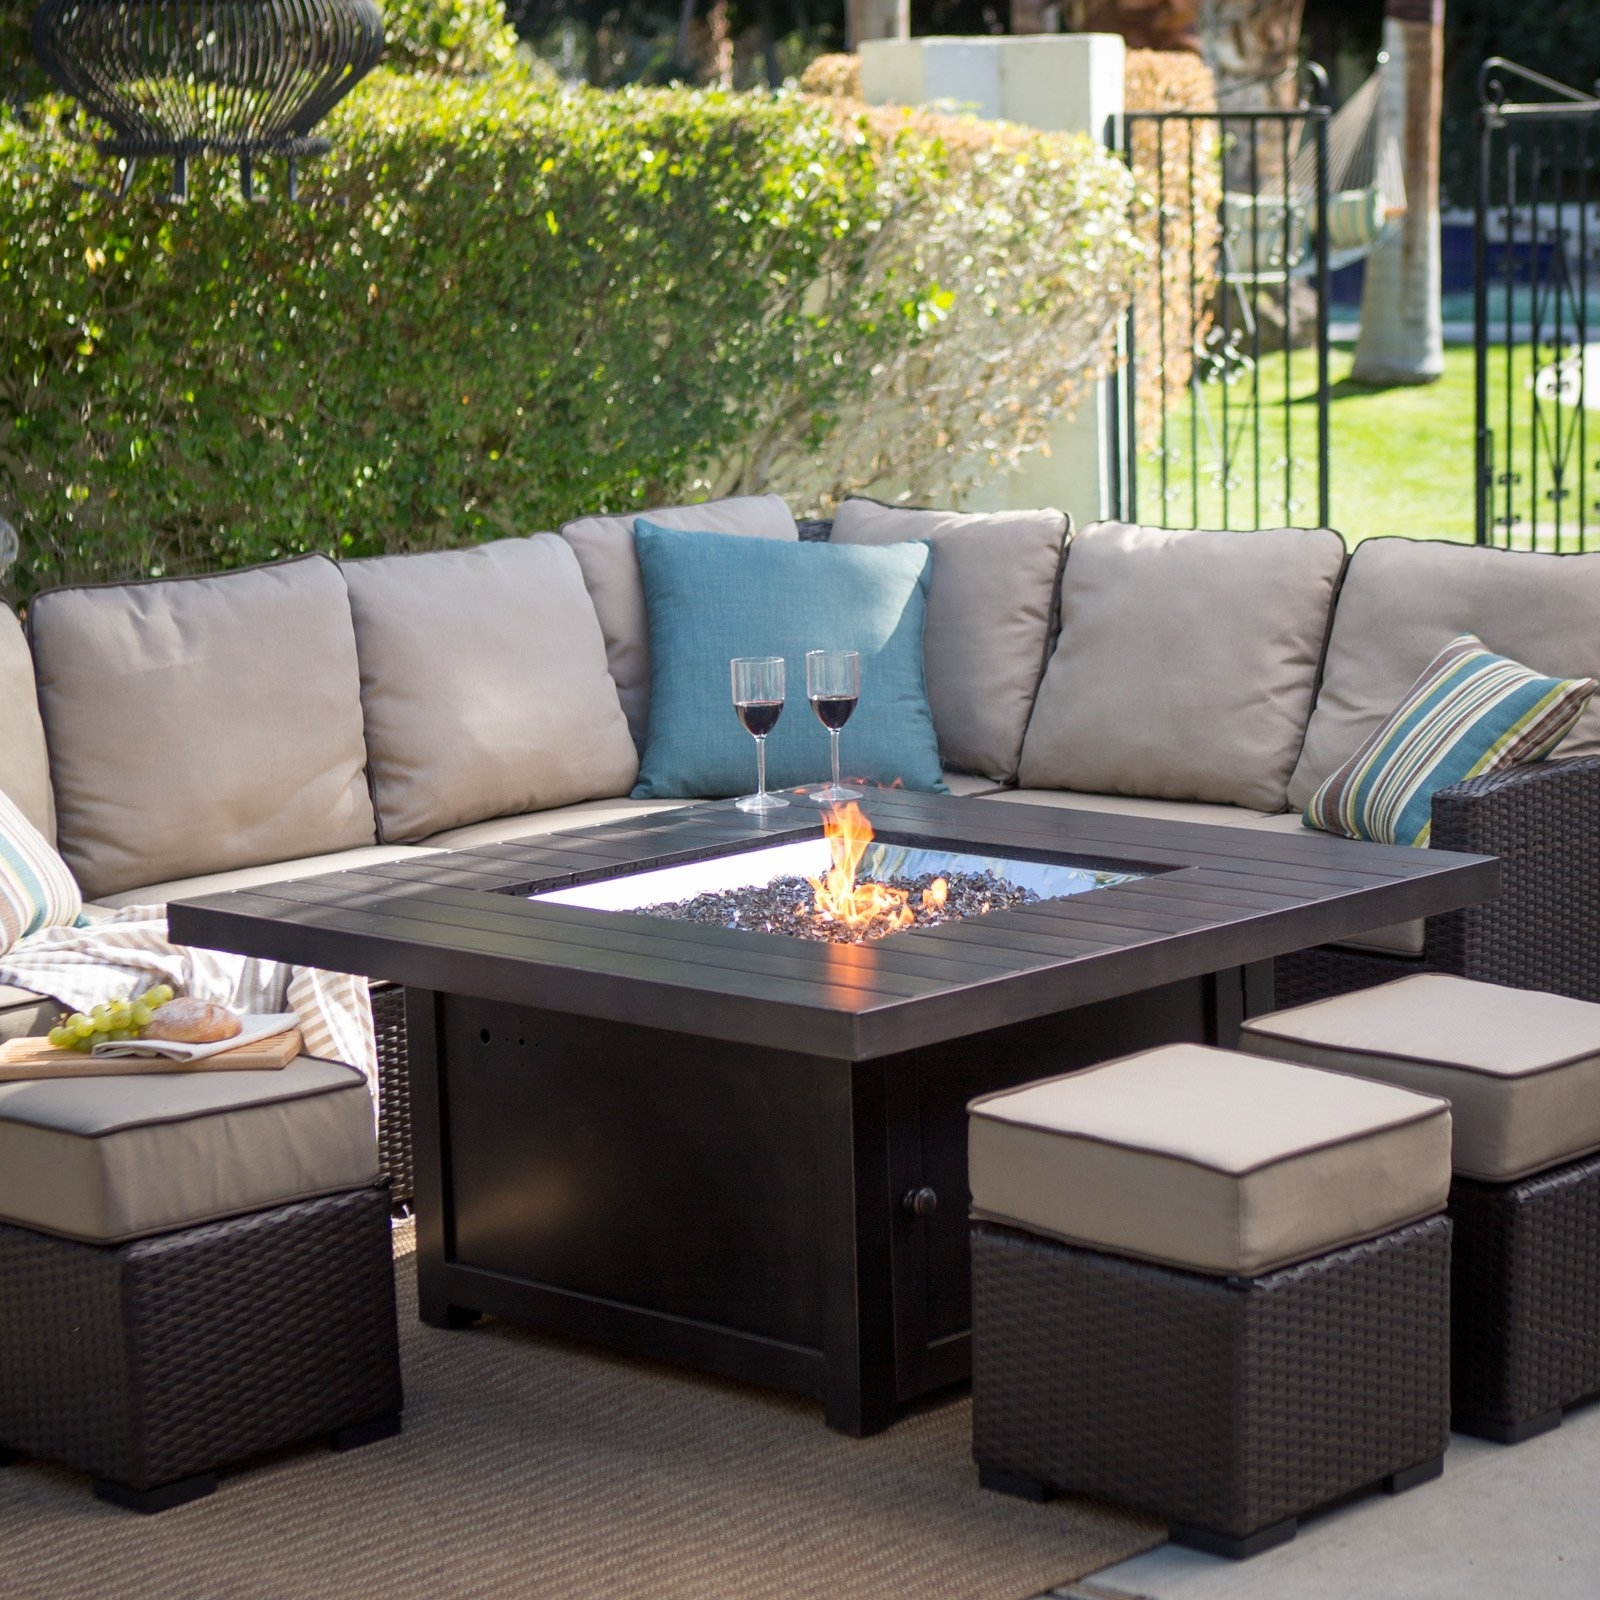 Recent Furniture: High Quality Patio Furniture Columbus Ohio And Fire Pit Throughout Patio Furniture Conversation Sets With Fire Pit (View 13 of 15)